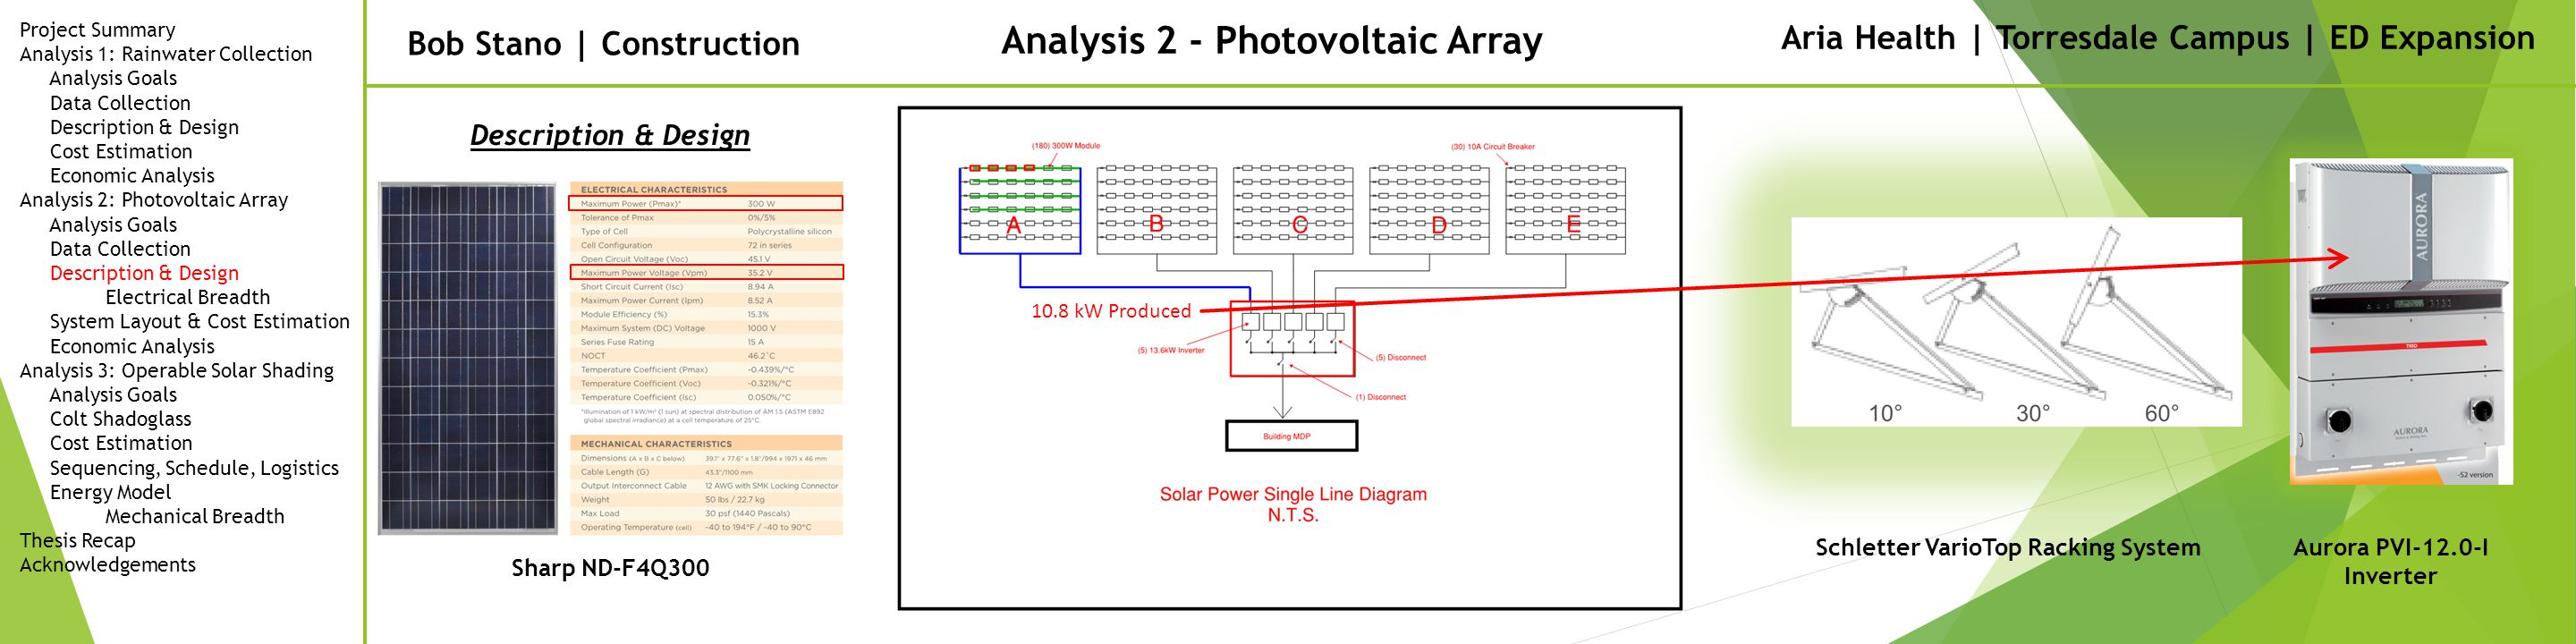 Bob Stano | Construction Analysis 2 - Photovoltaic Array Sharp ND-F4Q300 Schletter VarioTop Racking SystemAurora PVI-12.0-I Inverter Aria Health | Torresdale Campus | ED Expansion Description & Design Project Summary Analysis 1: Rainwater Collection Analysis Goals Data Collection Description & Design Cost Estimation Economic Analysis Analysis 2: Photovoltaic Array Analysis Goals Data Collection Description & Design Electrical Breadth System Layout & Cost Estimation Economic Analysis Analysis 3: Operable Solar Shading Analysis Goals Colt Shadoglass Cost Estimation Sequencing, Schedule, Logistics Energy Model Mechanical Breadth Thesis Recap Acknowledgements 10.8 kW Produced